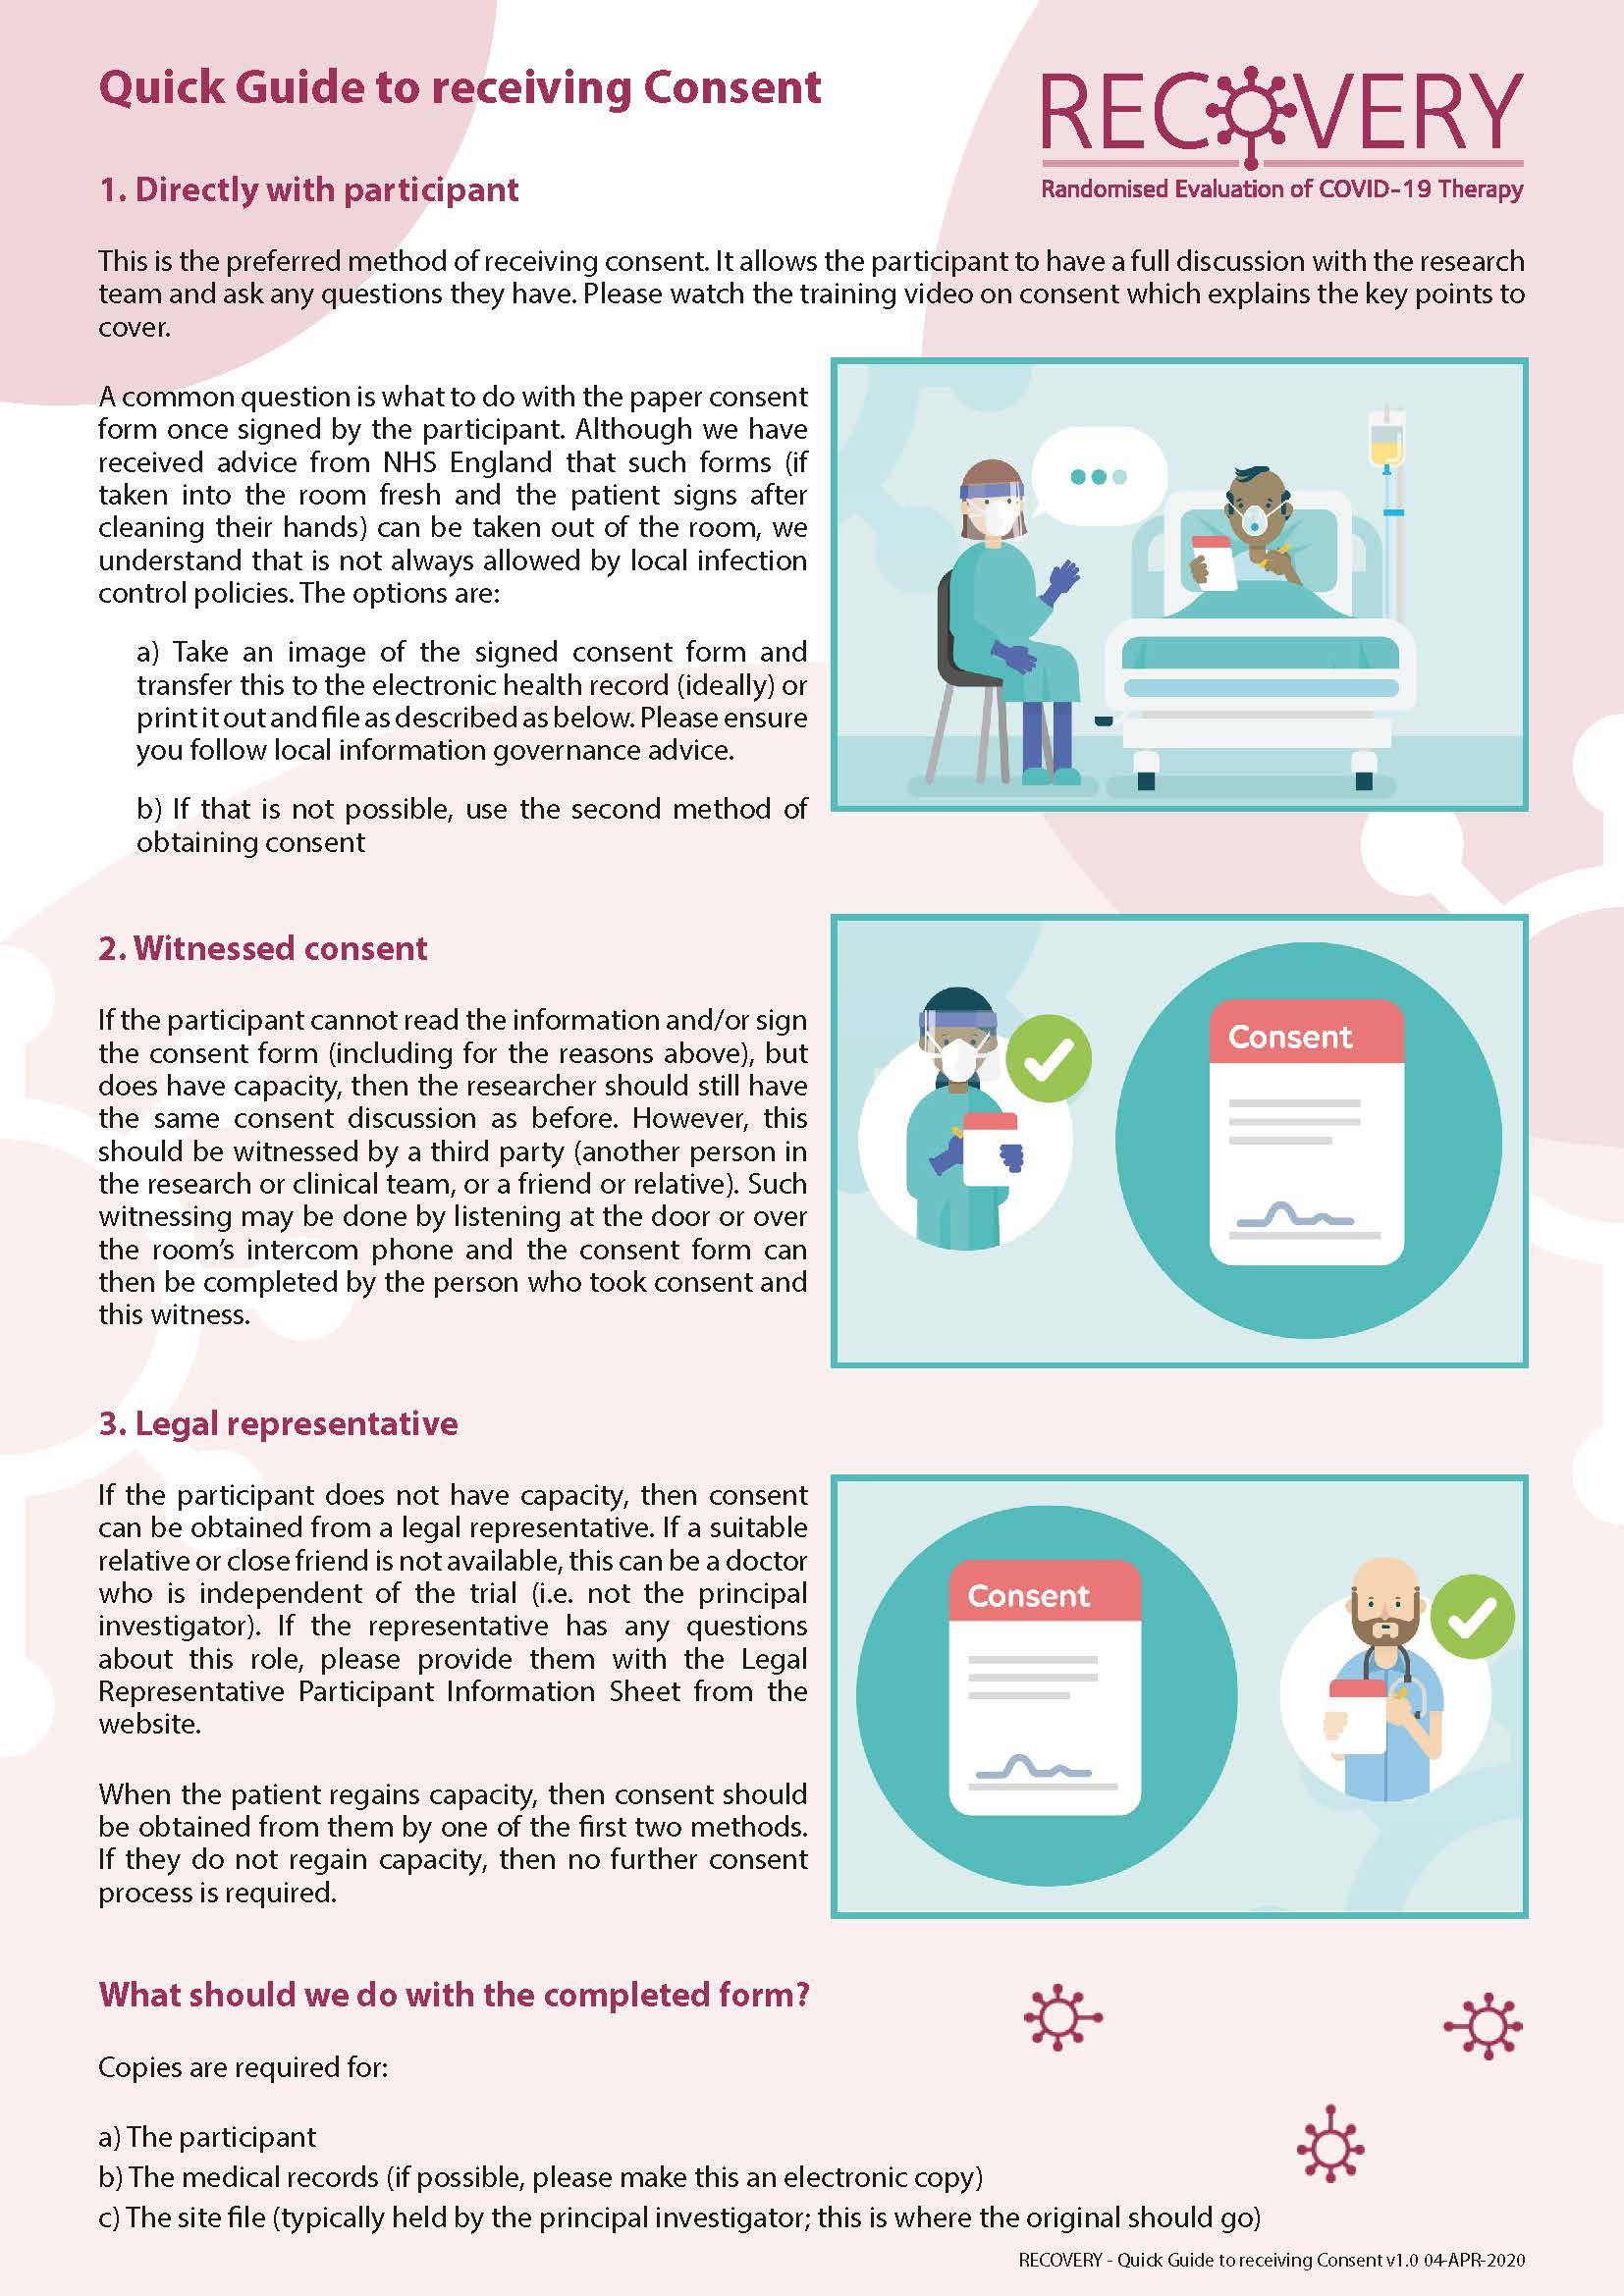 RECOVERY - Quick Guide to receiving Consent v1.0 FINAL 040220 1223.jpg